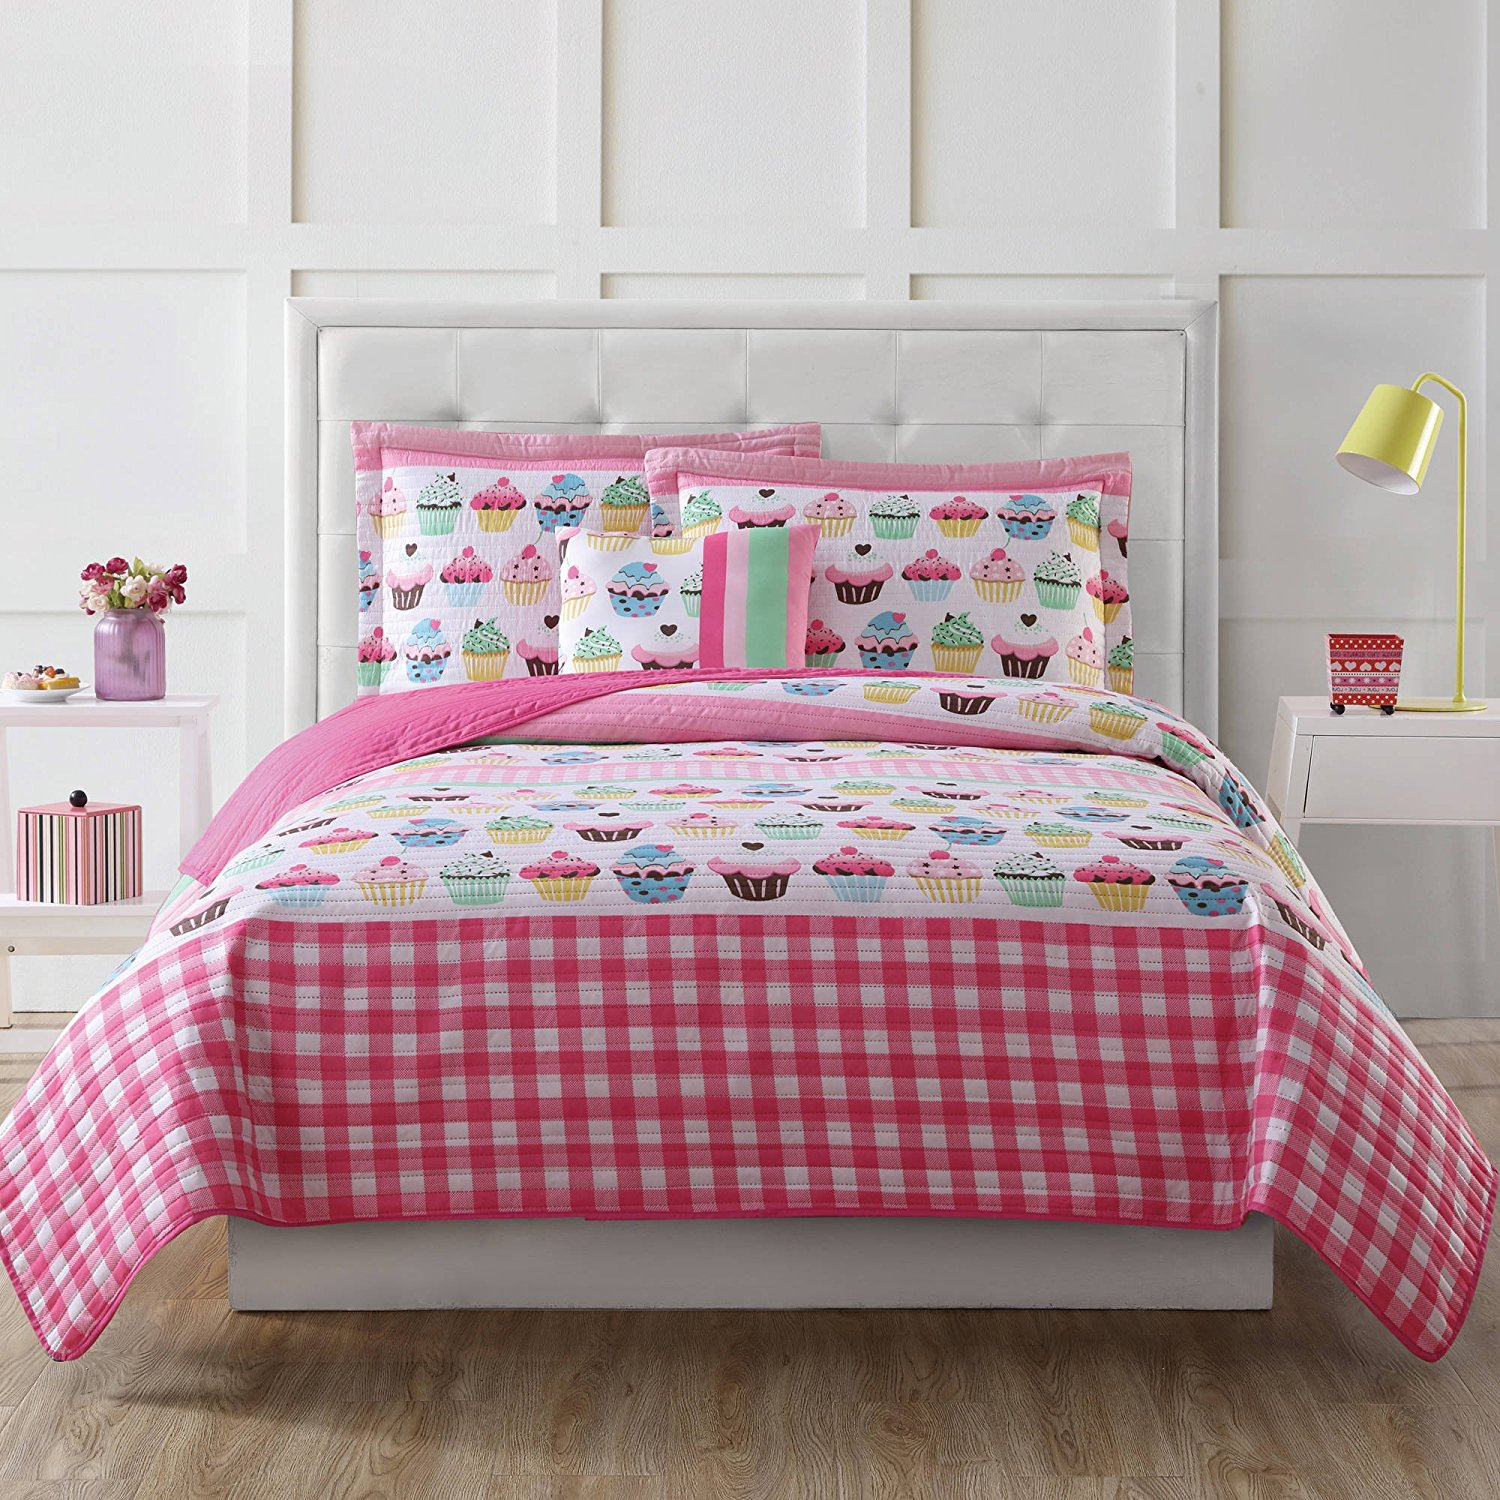 3 Piece Kids Girls Pink Yellow Blue White Twin Quilt Set, Cupcake Themed Bedding Kitchen Bright Cute Adorable Stylish Fun Sweet Pretty Plaid Charming Vibrant Baked Sweets Dessert Checkered, Microfiber